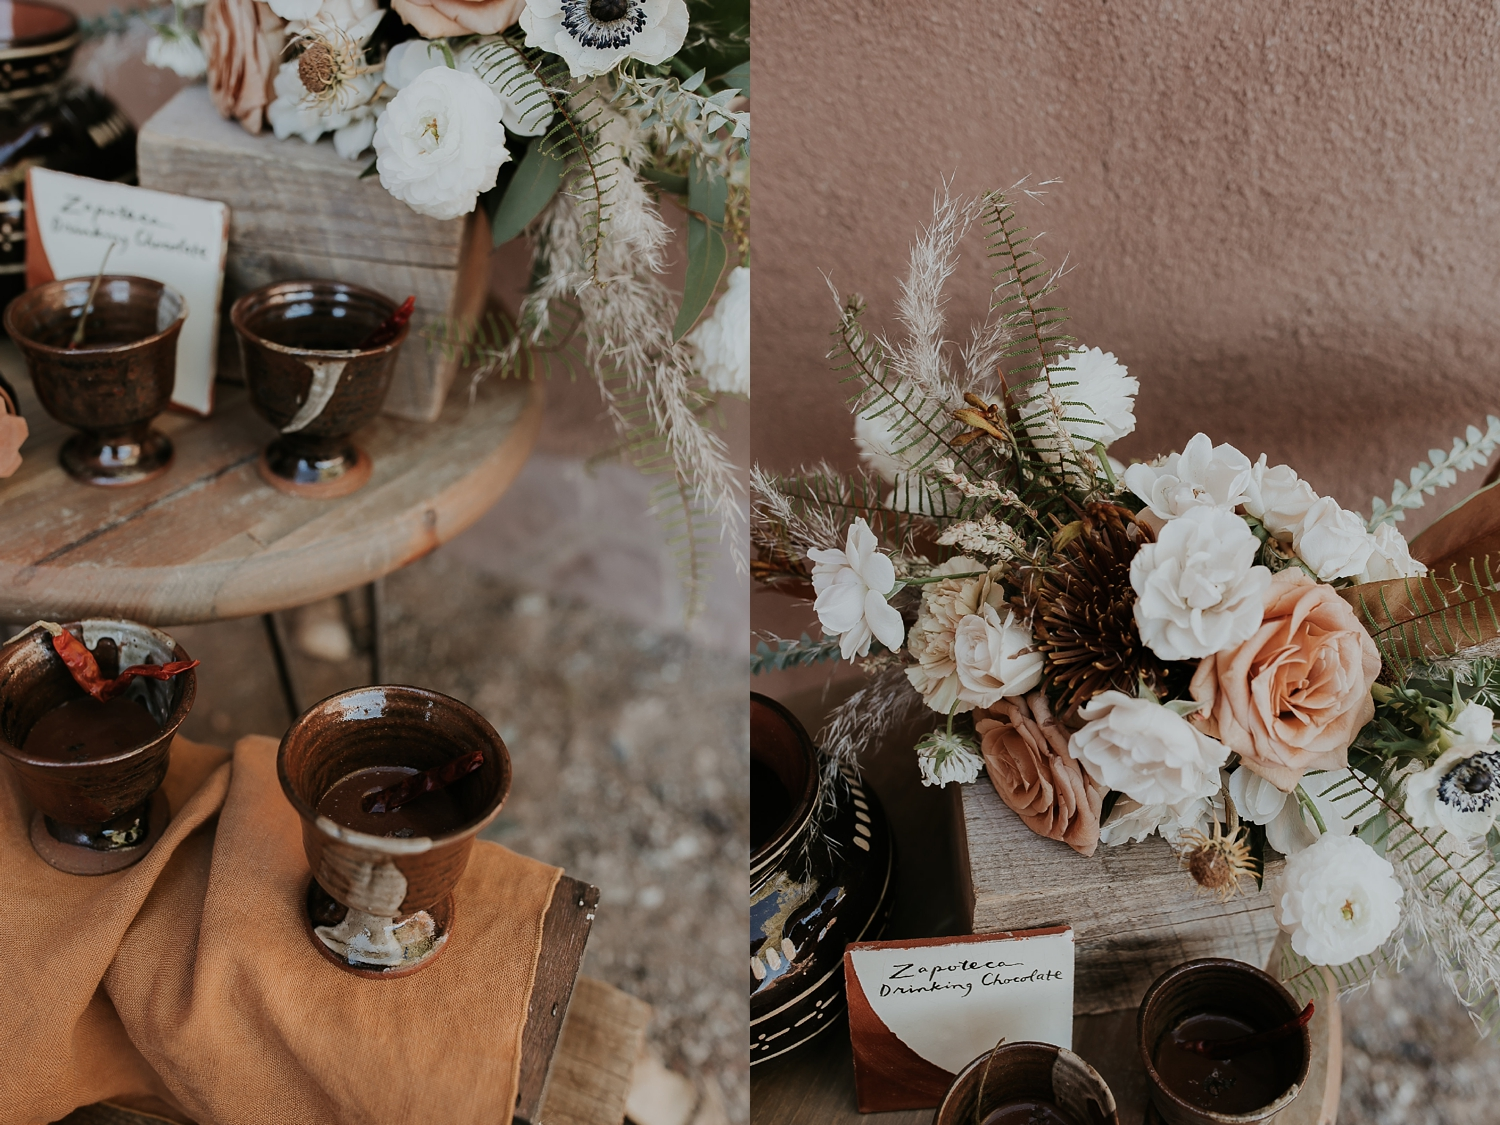 Alicia+lucia+photography+-+albuquerque+wedding+photographer+-+santa+fe+wedding+photography+-+new+mexico+wedding+photographer+-+new+mexico+ghost+ranch+wedding+-+styled+wedding+shoot_0013.jpg